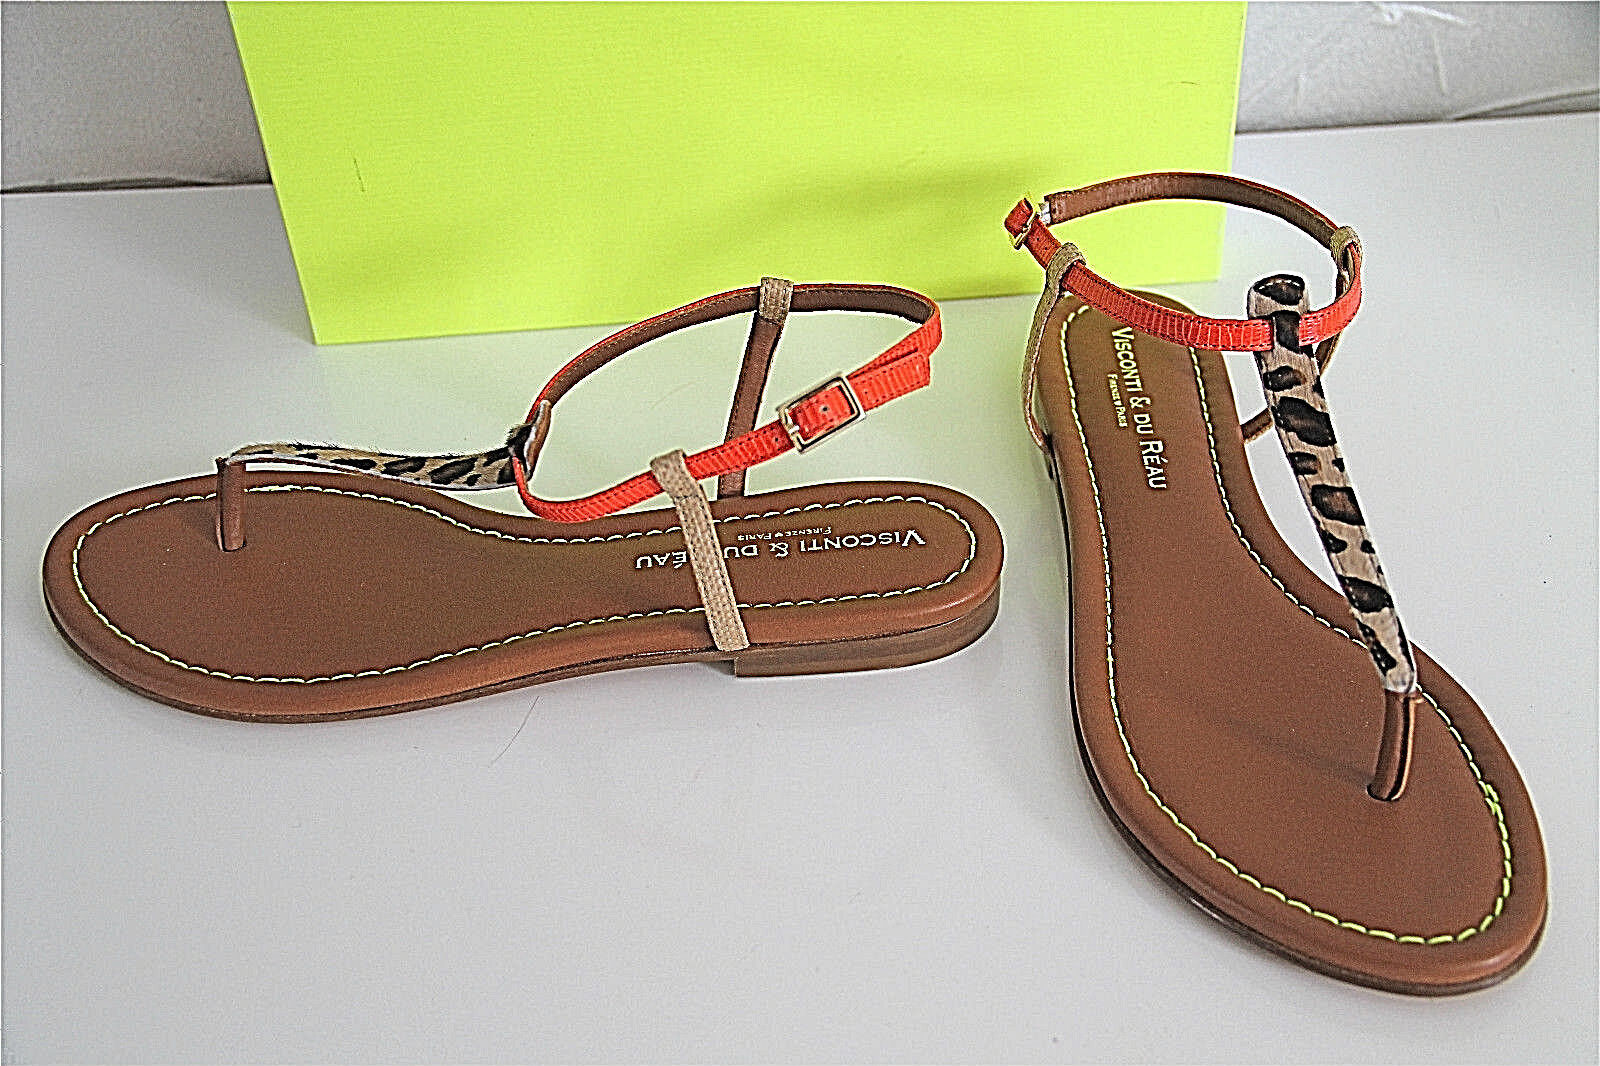 Sandales sandals léopard VISCONTI DU RÉAU size 40 eu 9 us 7 uk NEUVES val.